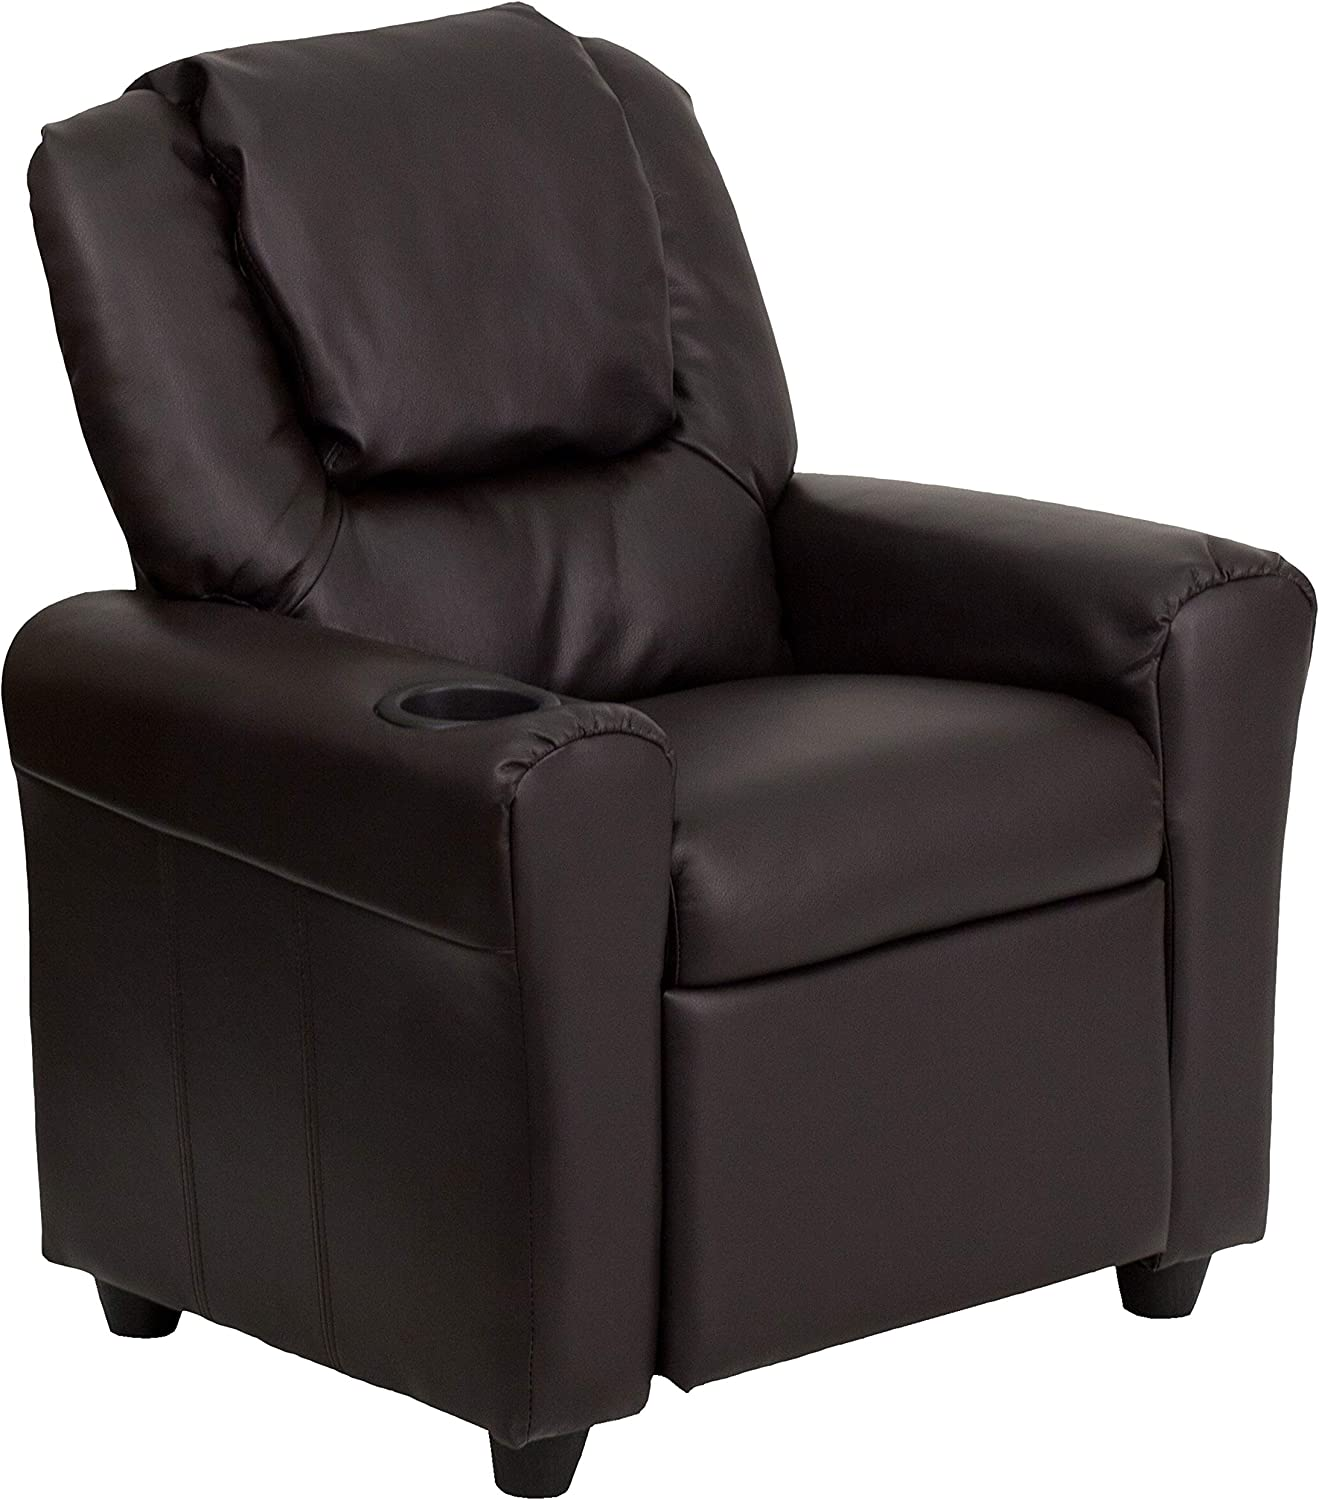 Top 10 Best Kids Recliner (2020 Reviews & Buying Guide) 9